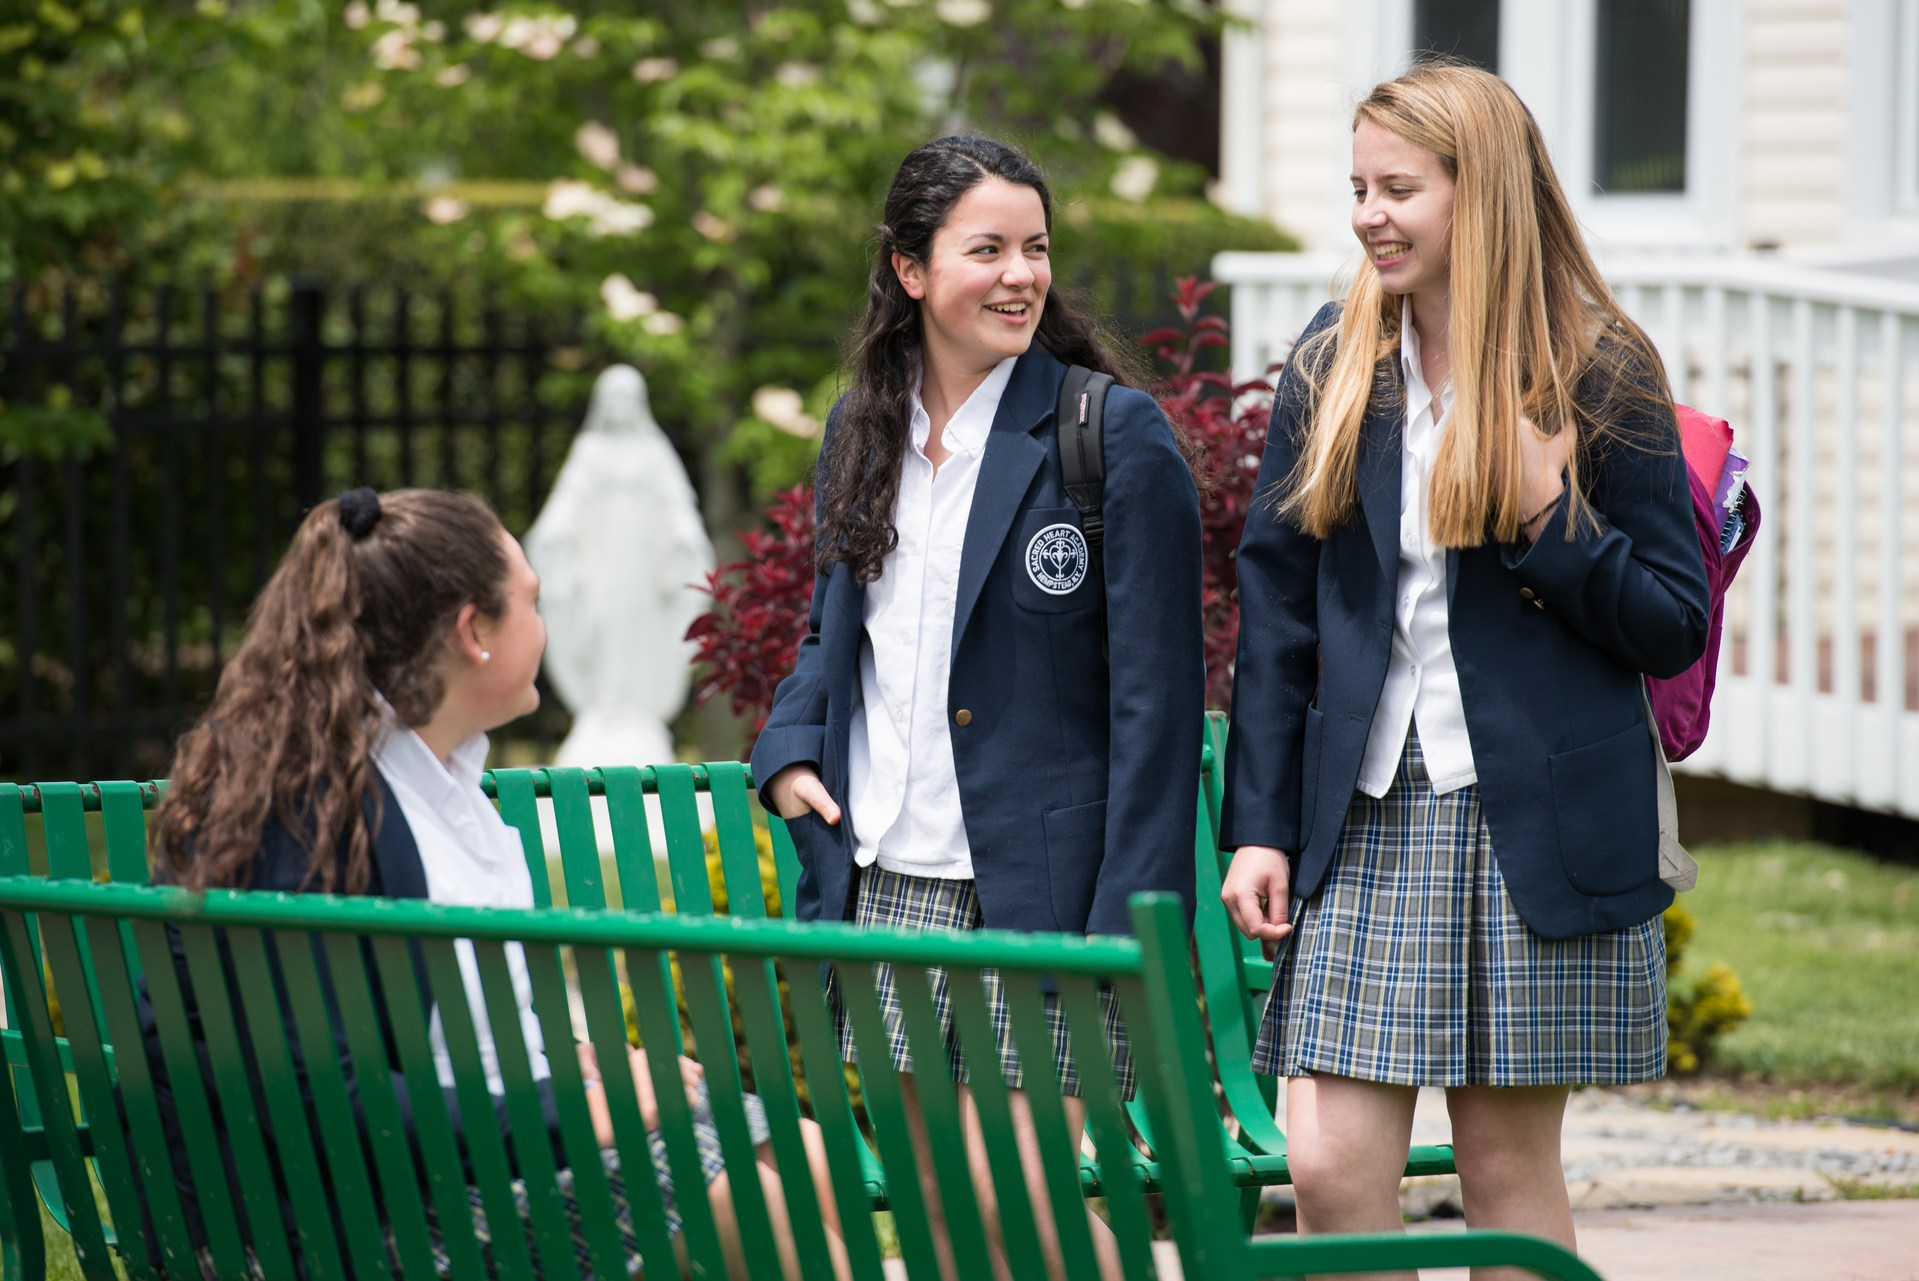 SHA students in courtyard